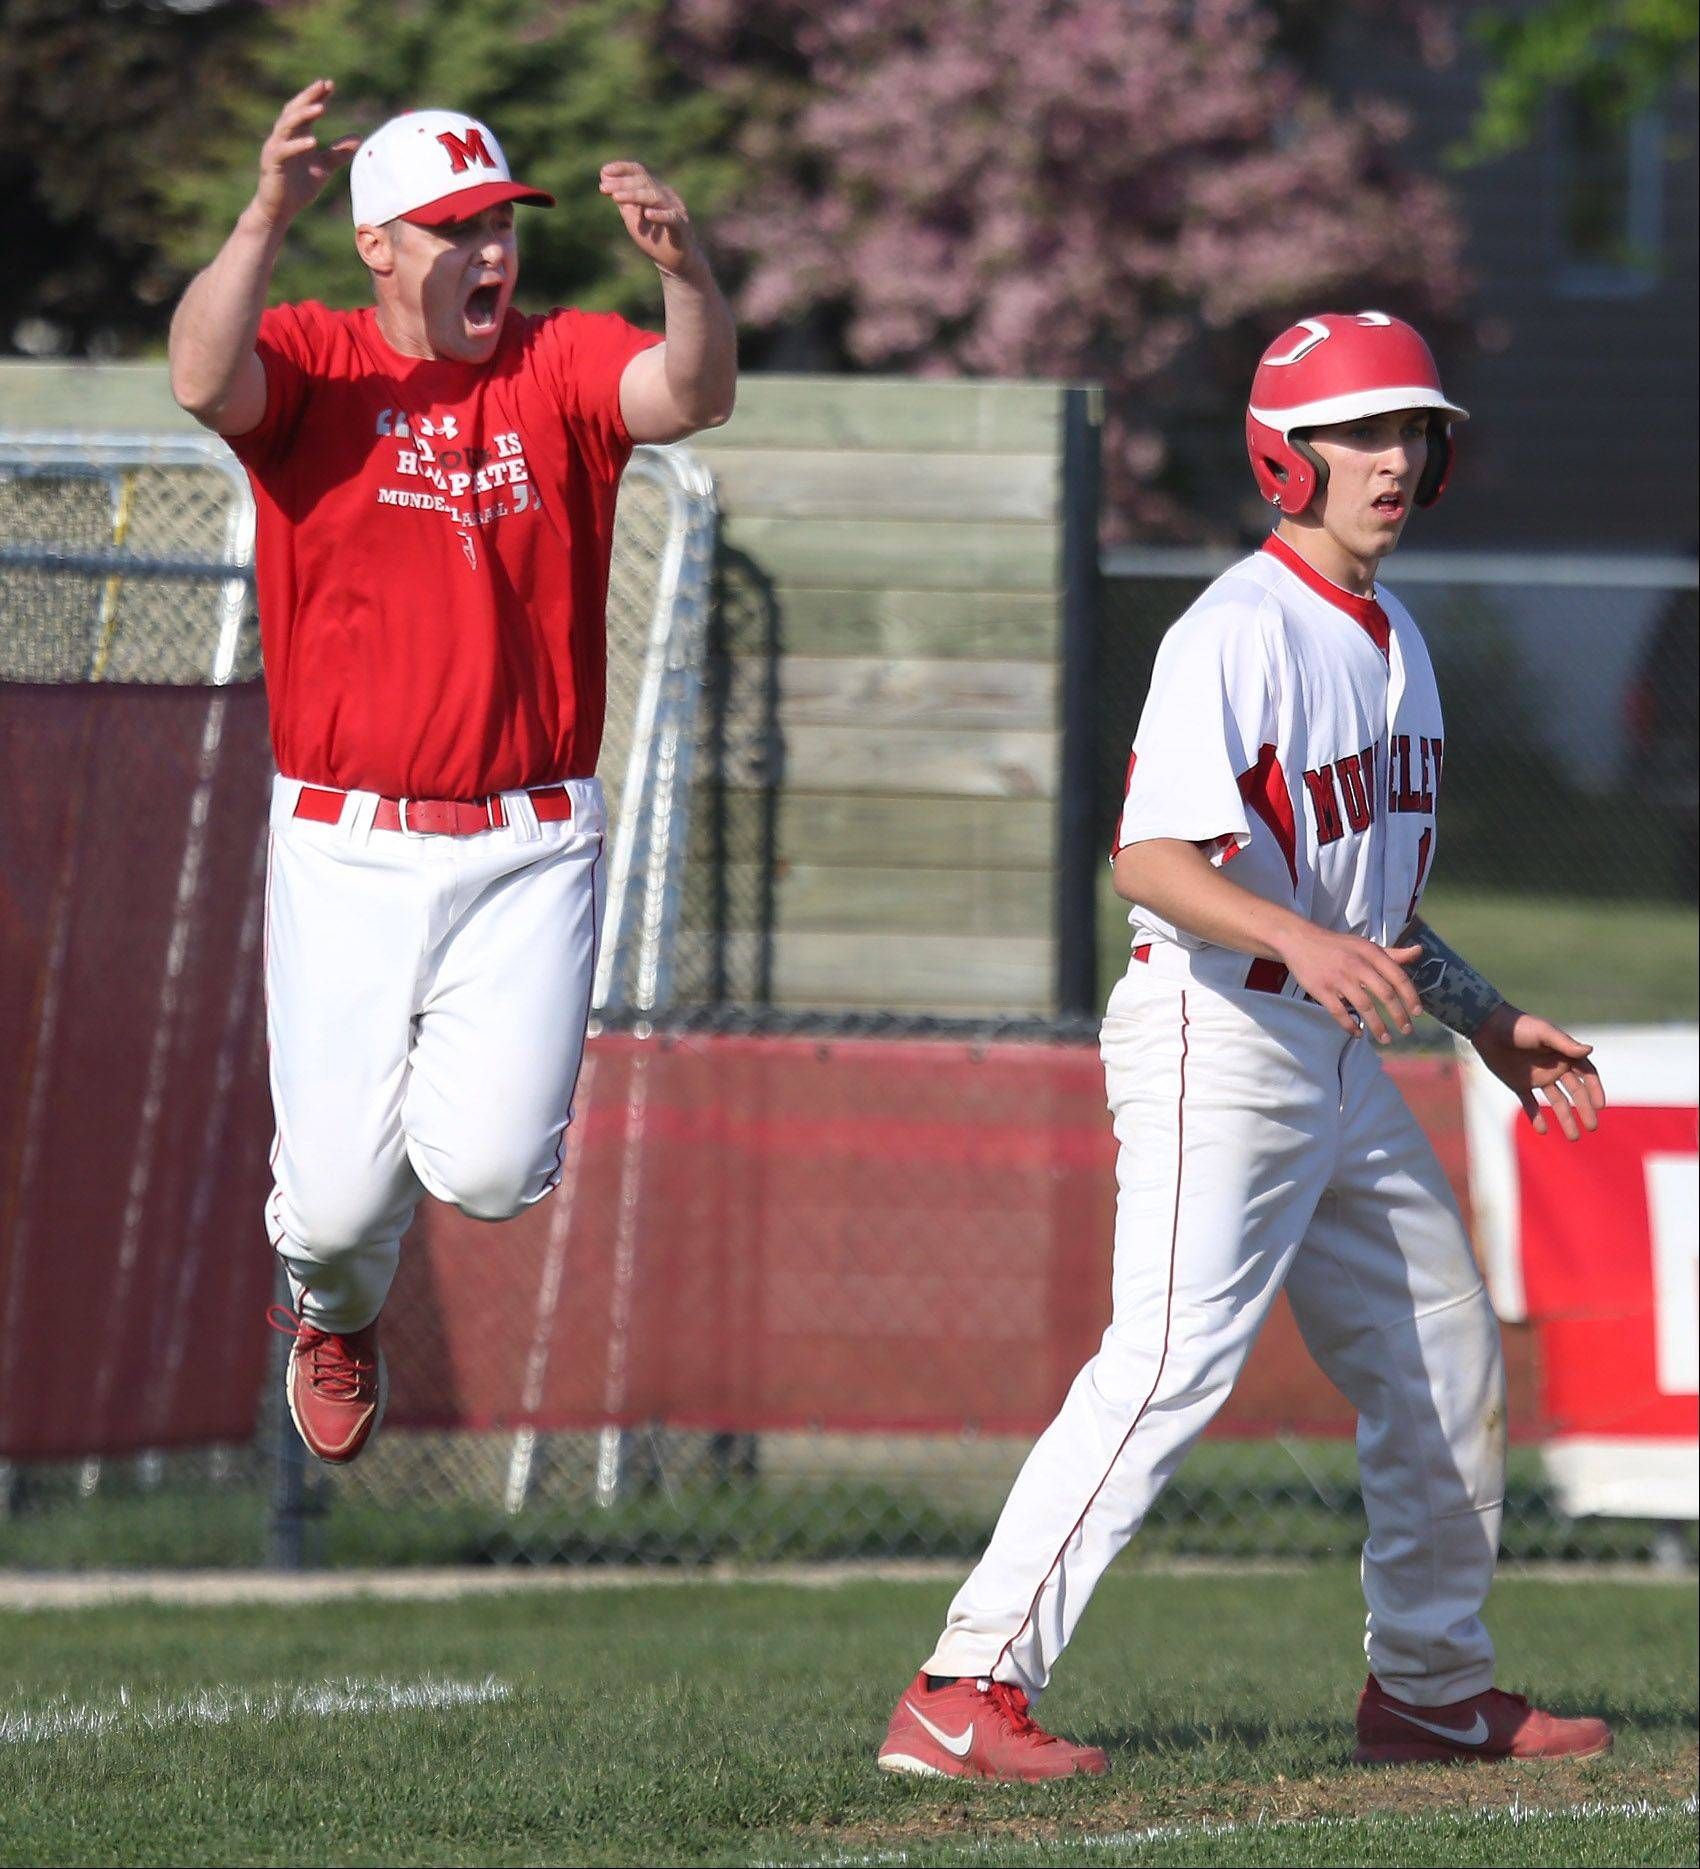 Mundelein third base coach Todd Parola can't believe the call at first base as Mundelein's Dillon O'Donoghue rounds third base during the North Suburban Conference championship game against Wauconda on Thursday at Mundelein.